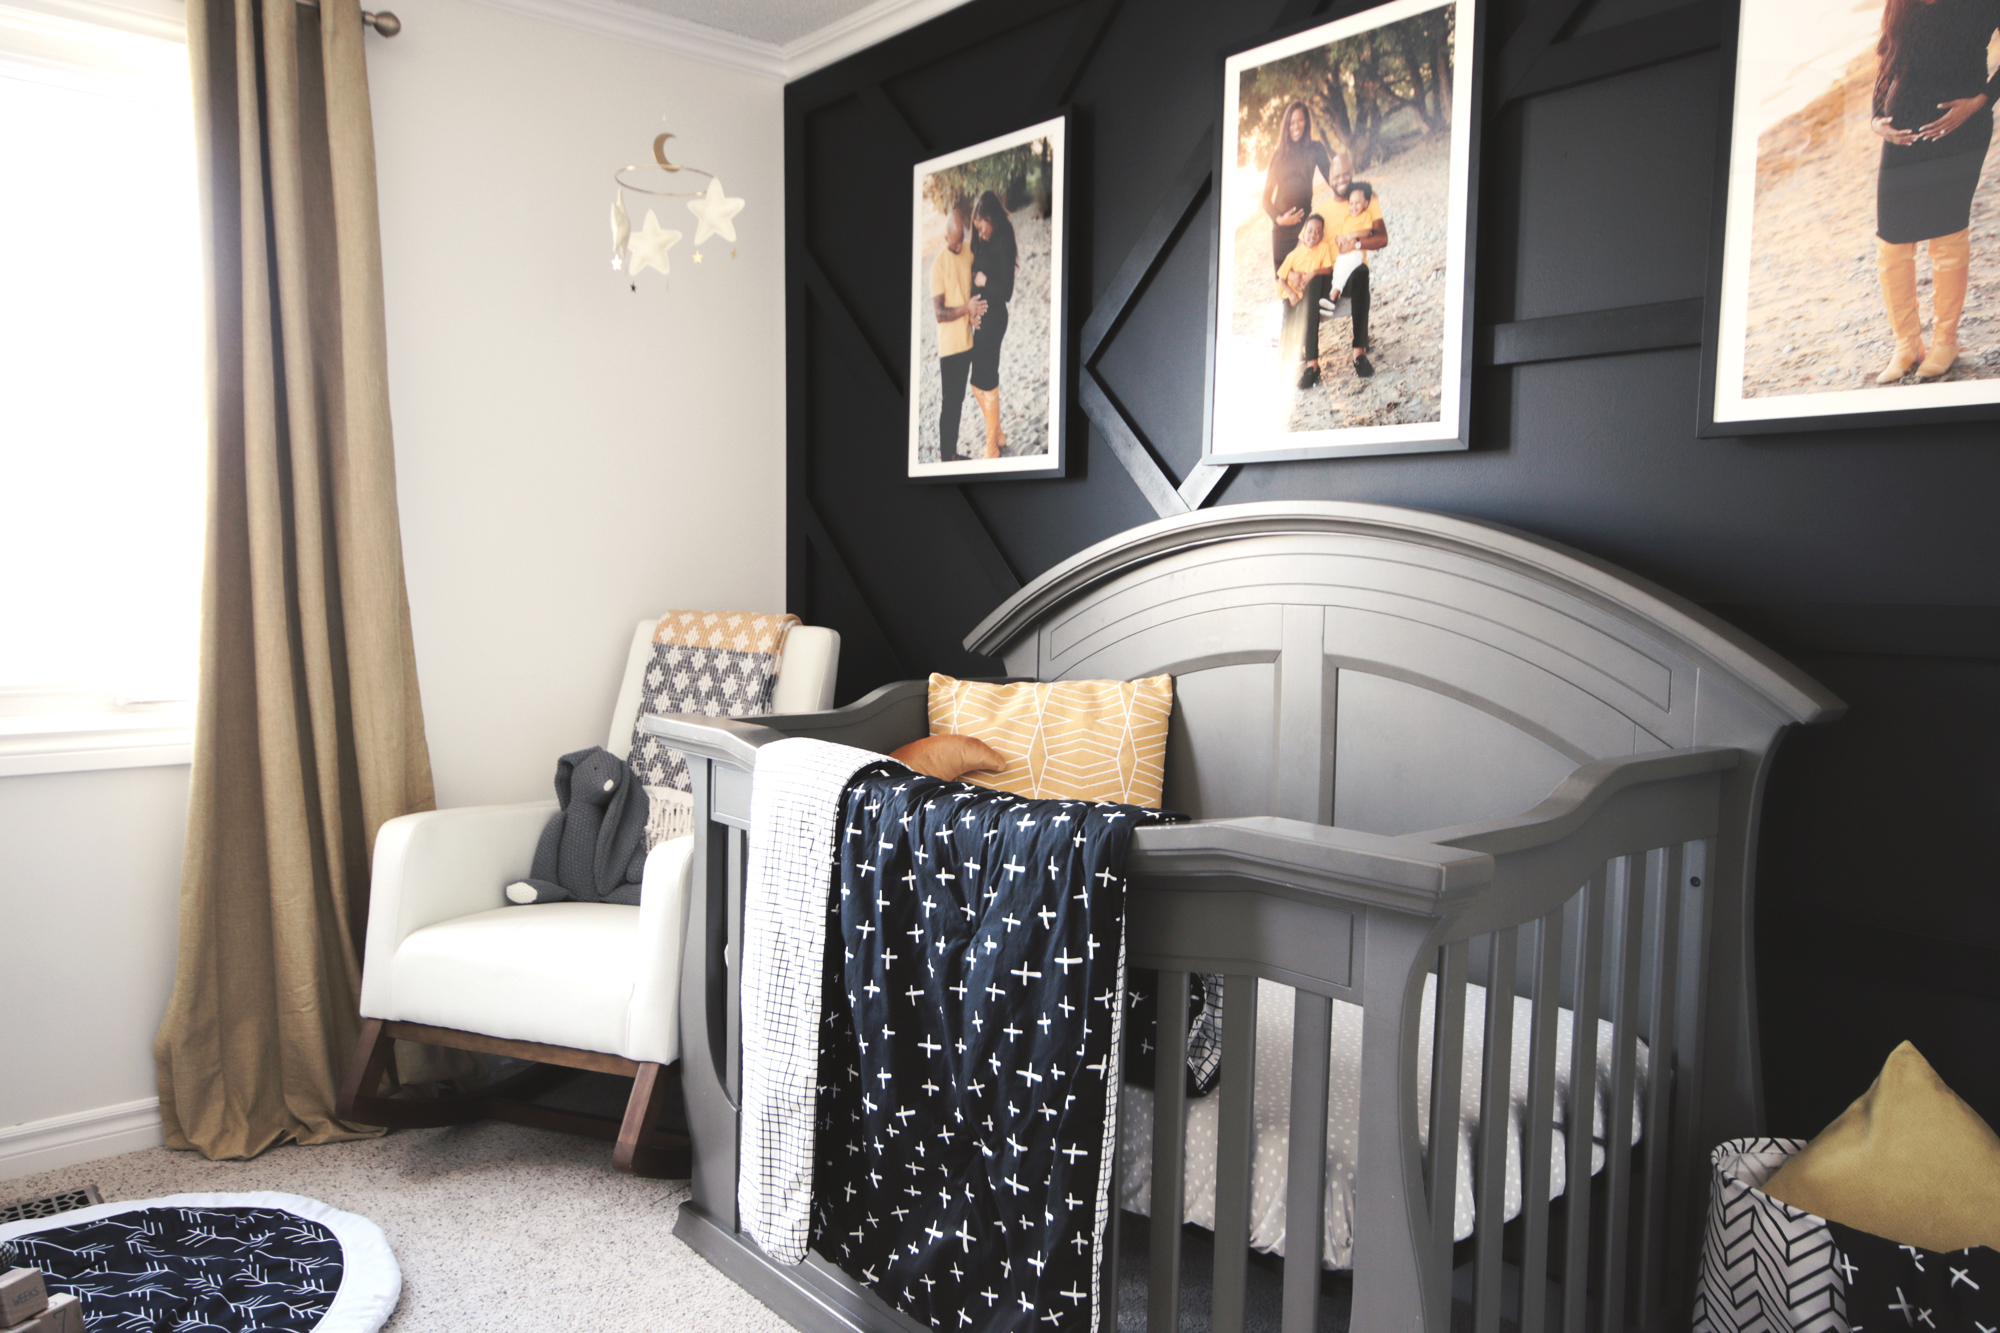 Geometric accents in the crib bedding play off the geometric feature wall